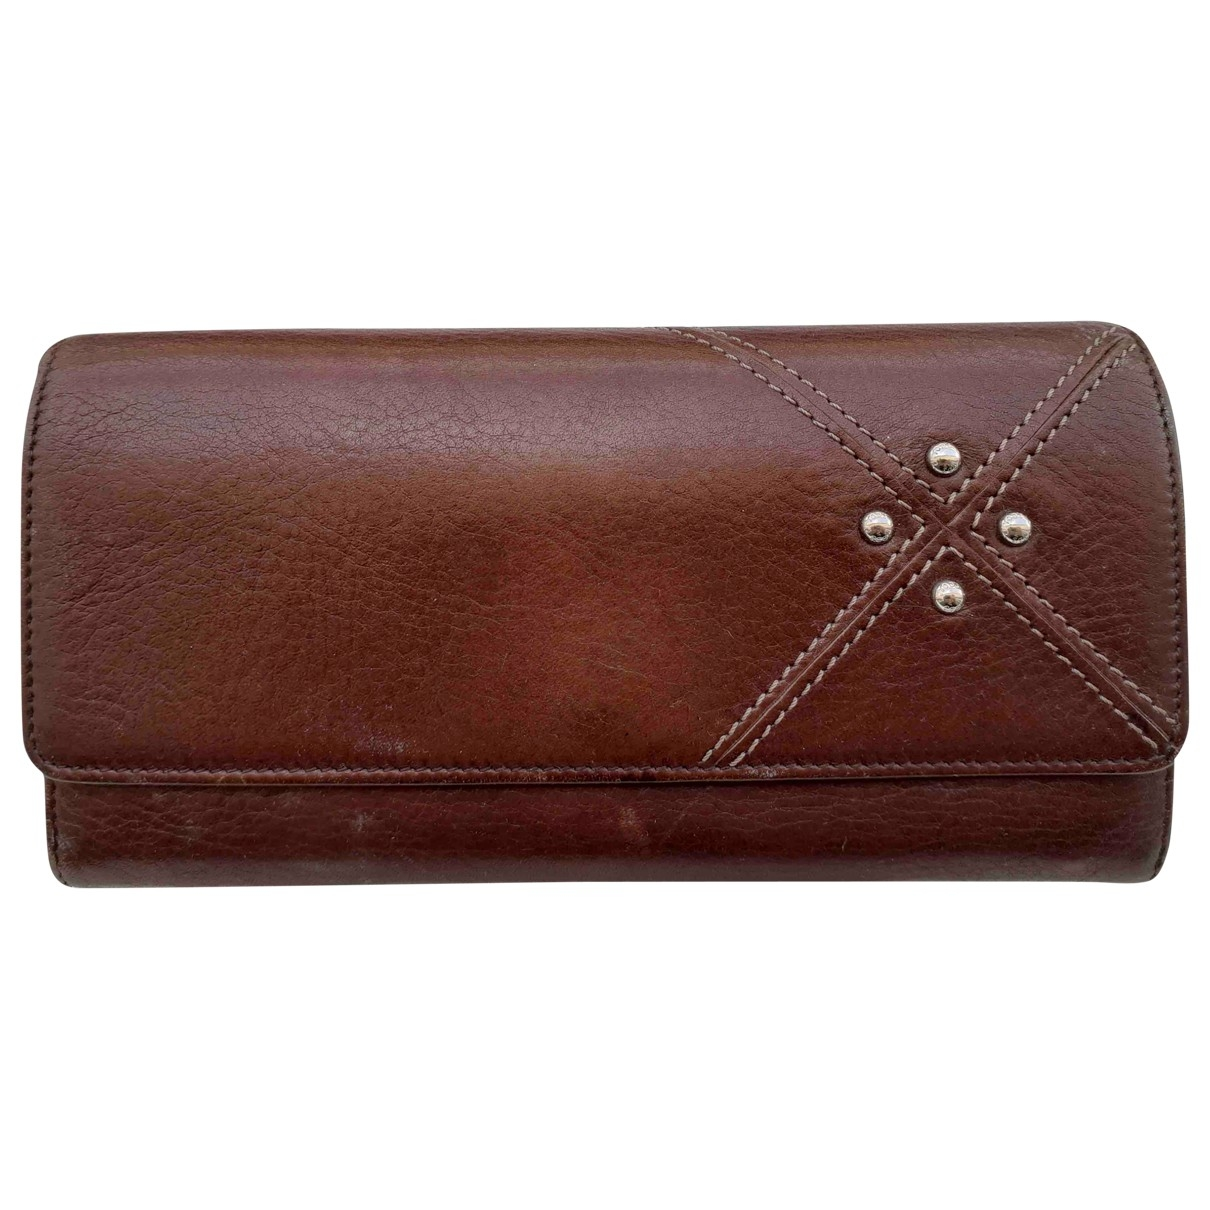 Tod's \N Brown Leather wallet for Women \N